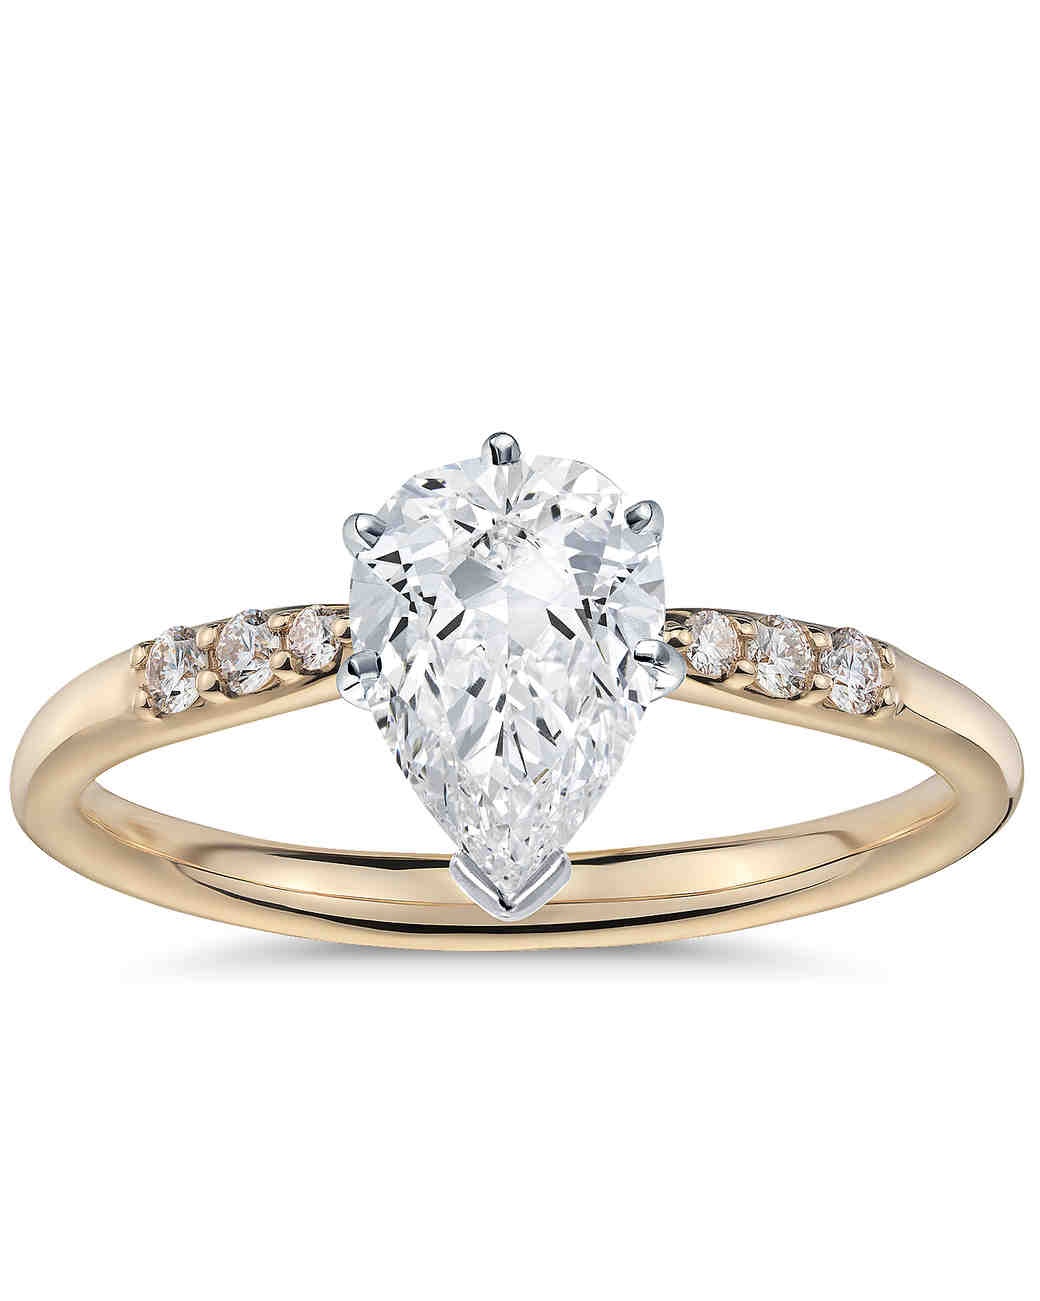 Blue Nile Pear-Cut Engagement Ring